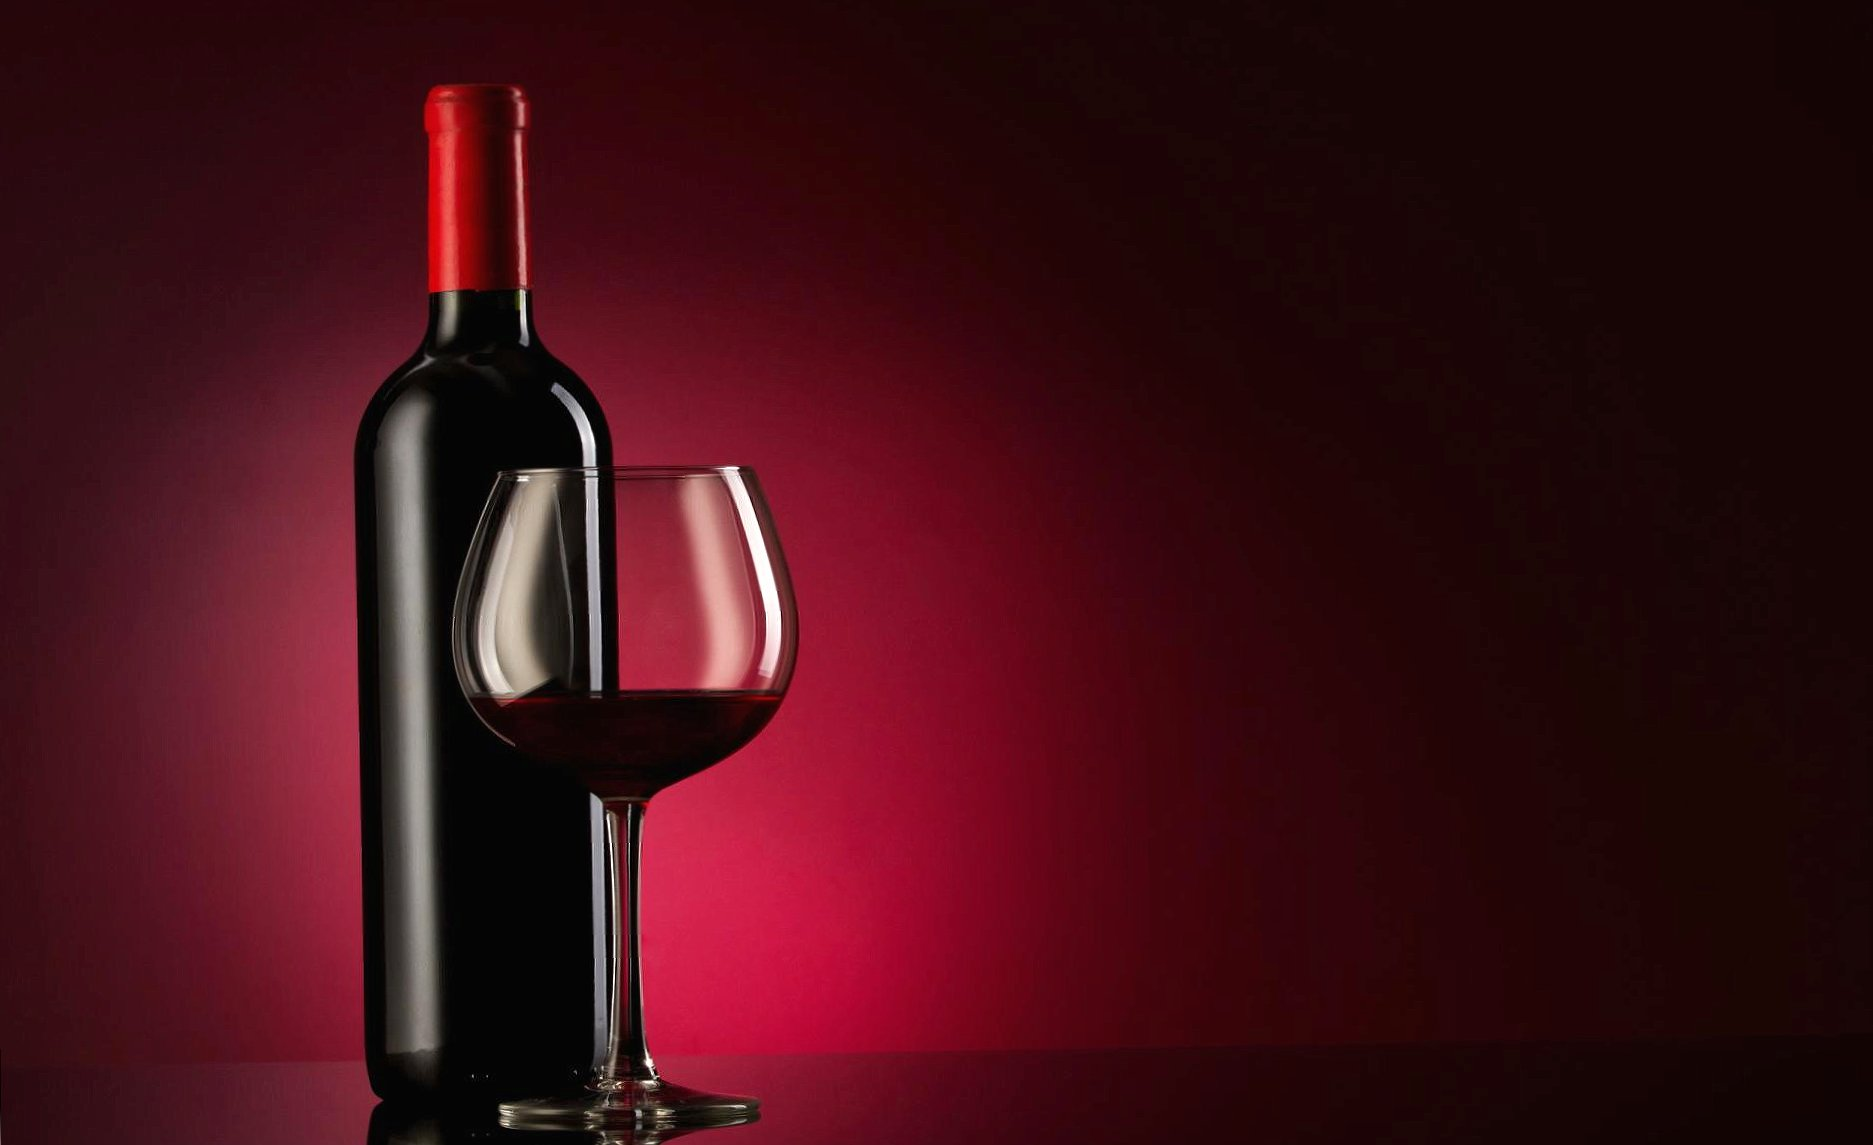 Red wine bottle and glass wallpapers HD quality